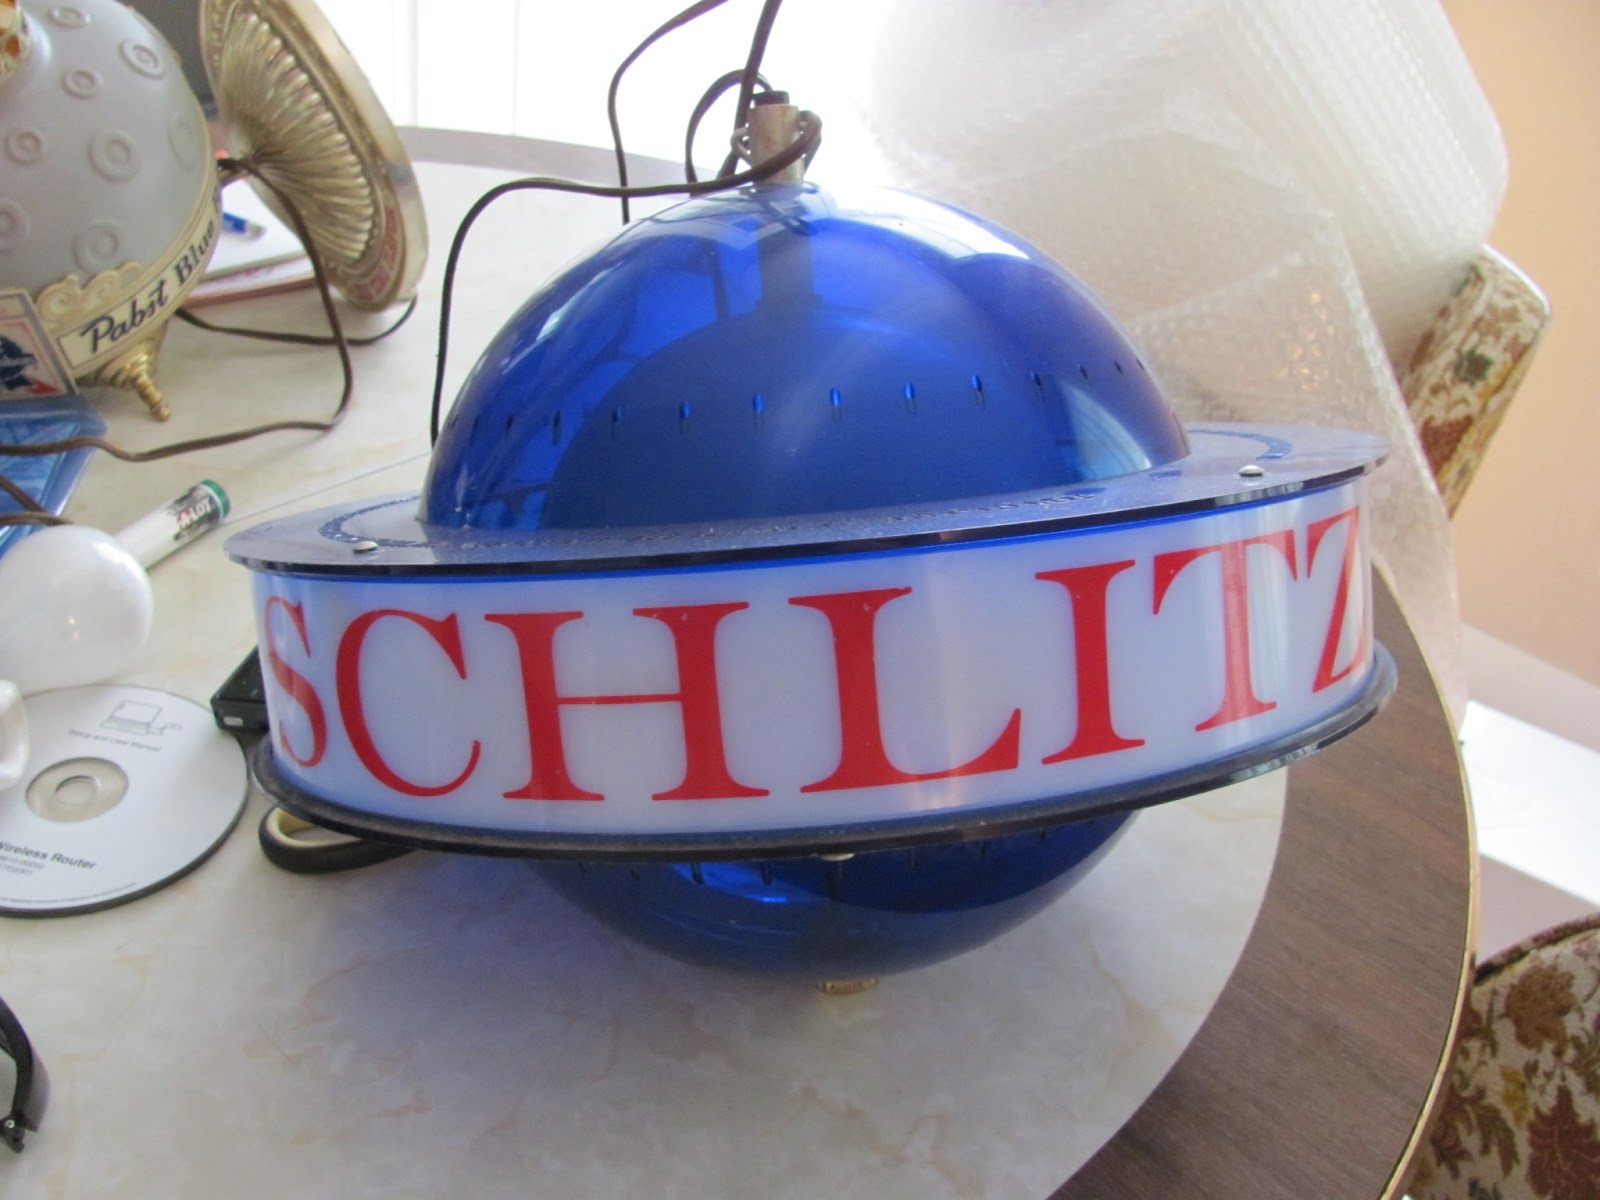 Blue spinning globe light with the Schlitz logo